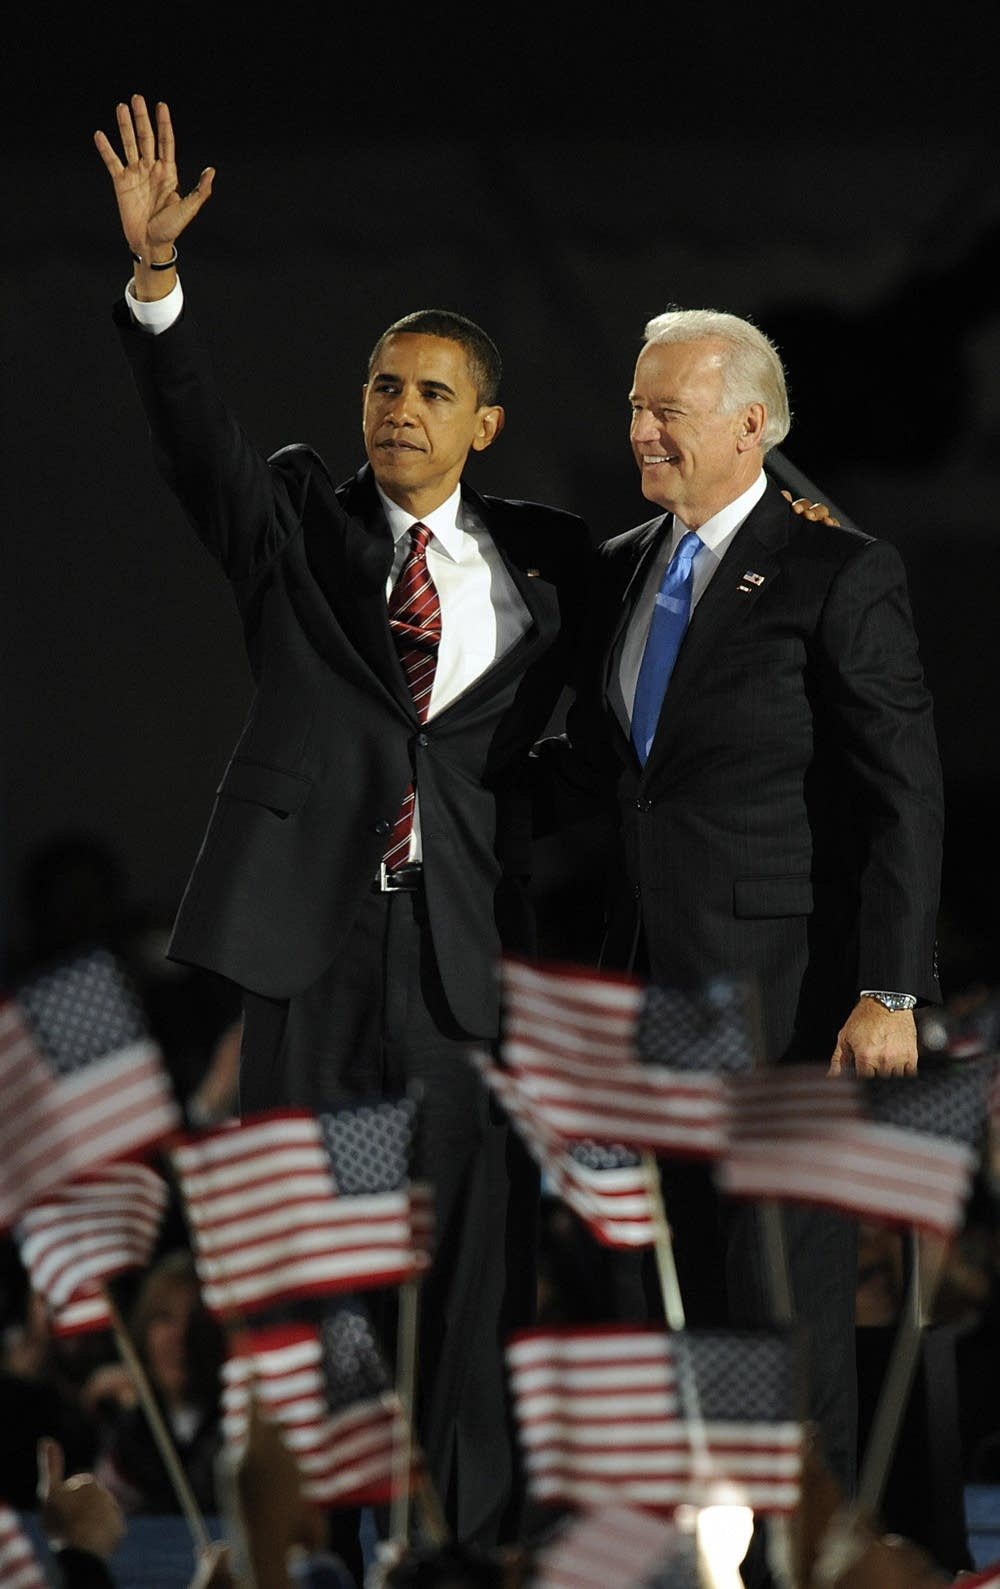 Obama and Biden celebrate their victory